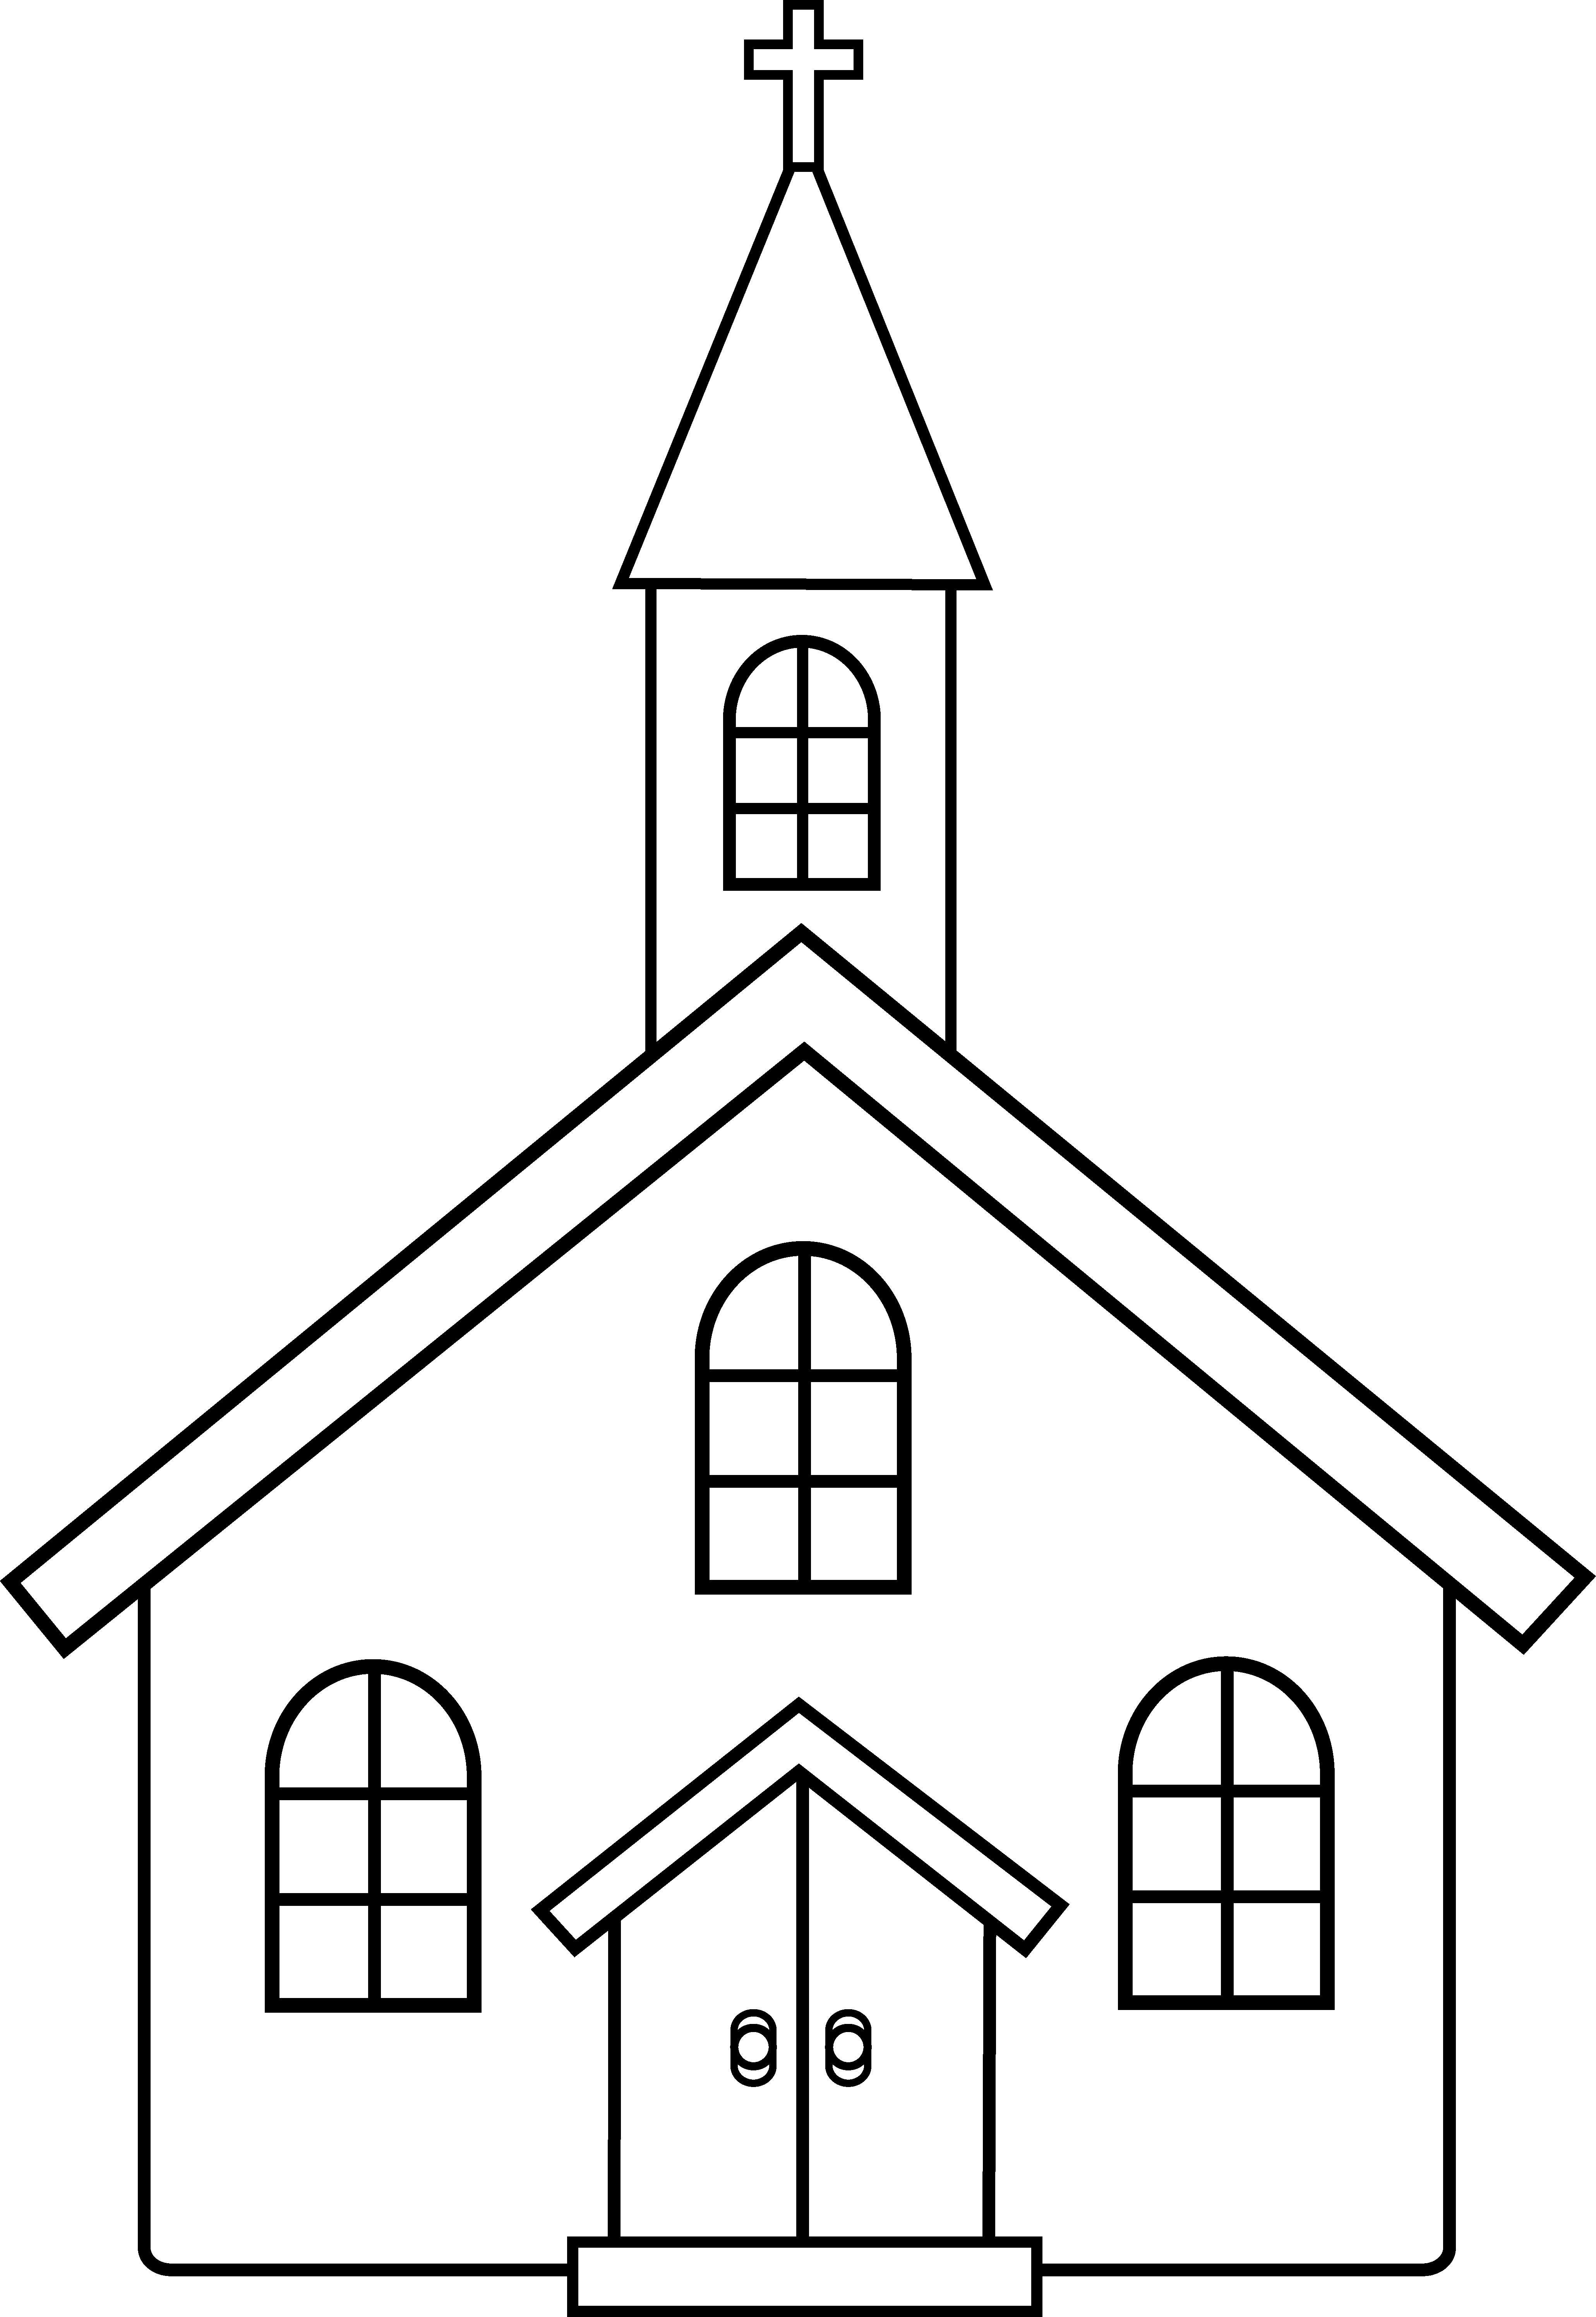 Church black and white clipart vector free Free church clipart black and white clip art - ClipartPost vector free